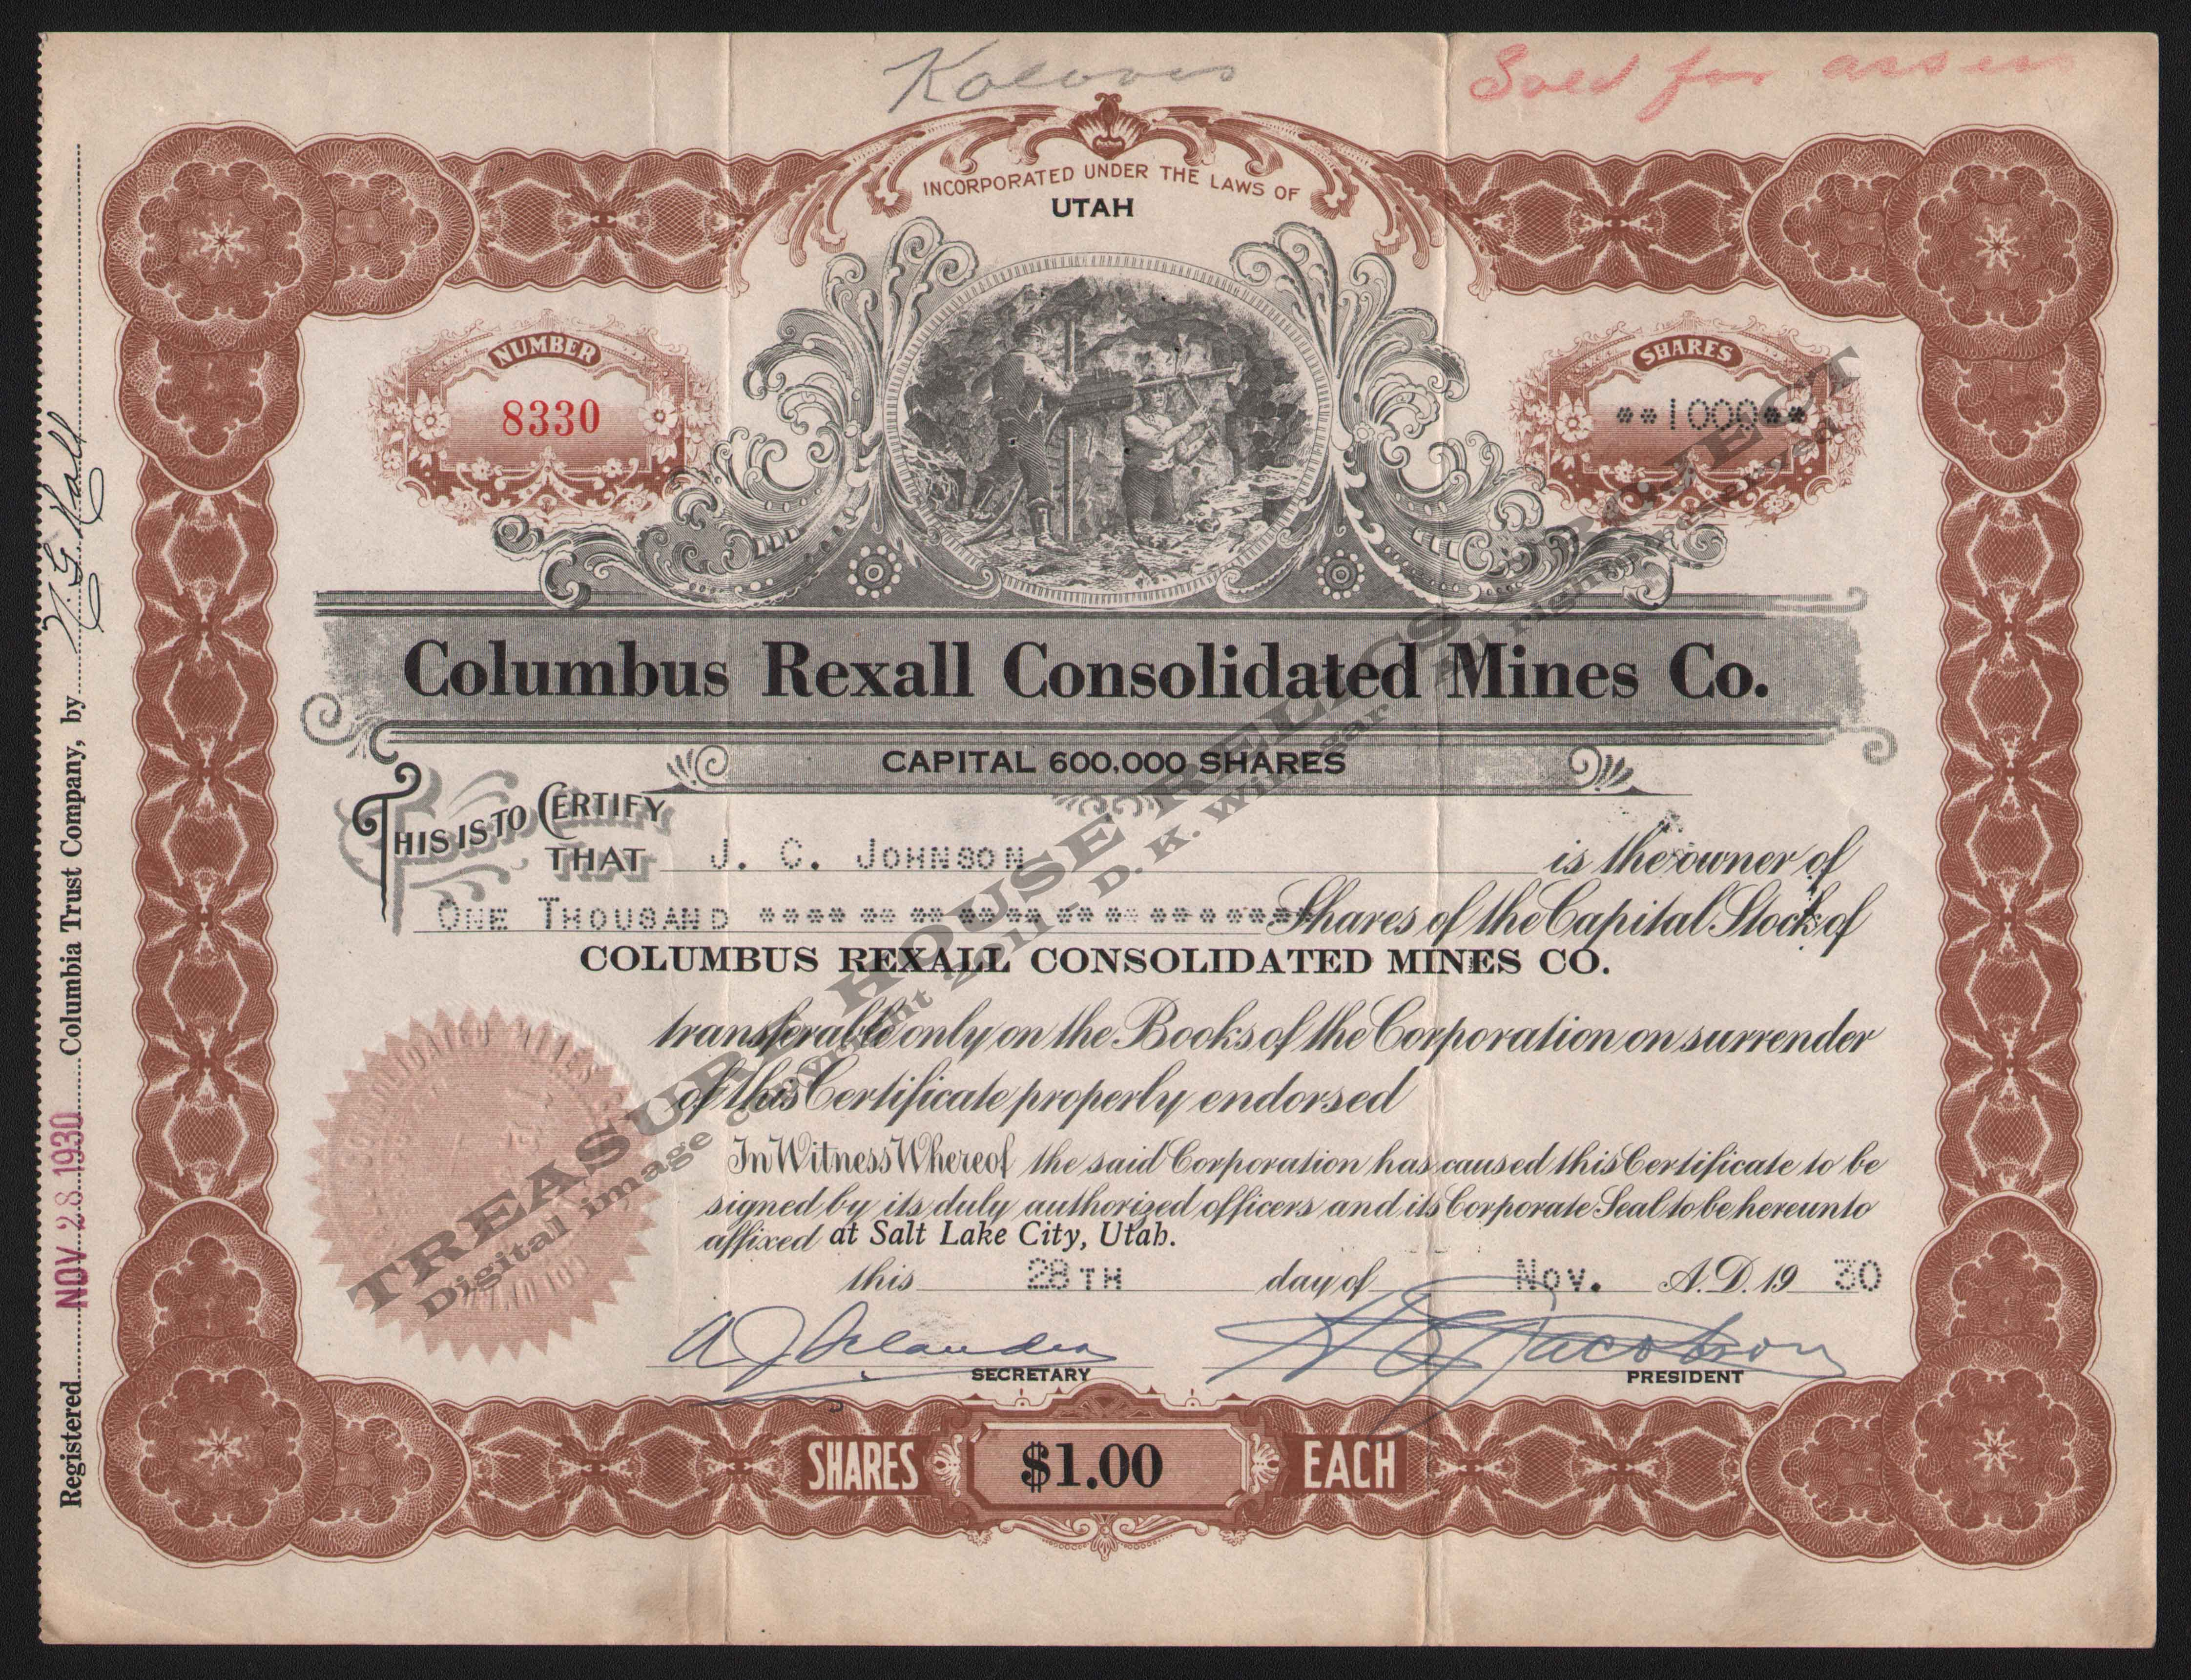 COLUMBUS_REXALL_CONSOLIDATED_MINES_COMPANY_8330_1930_400_EMBOSS.jpg